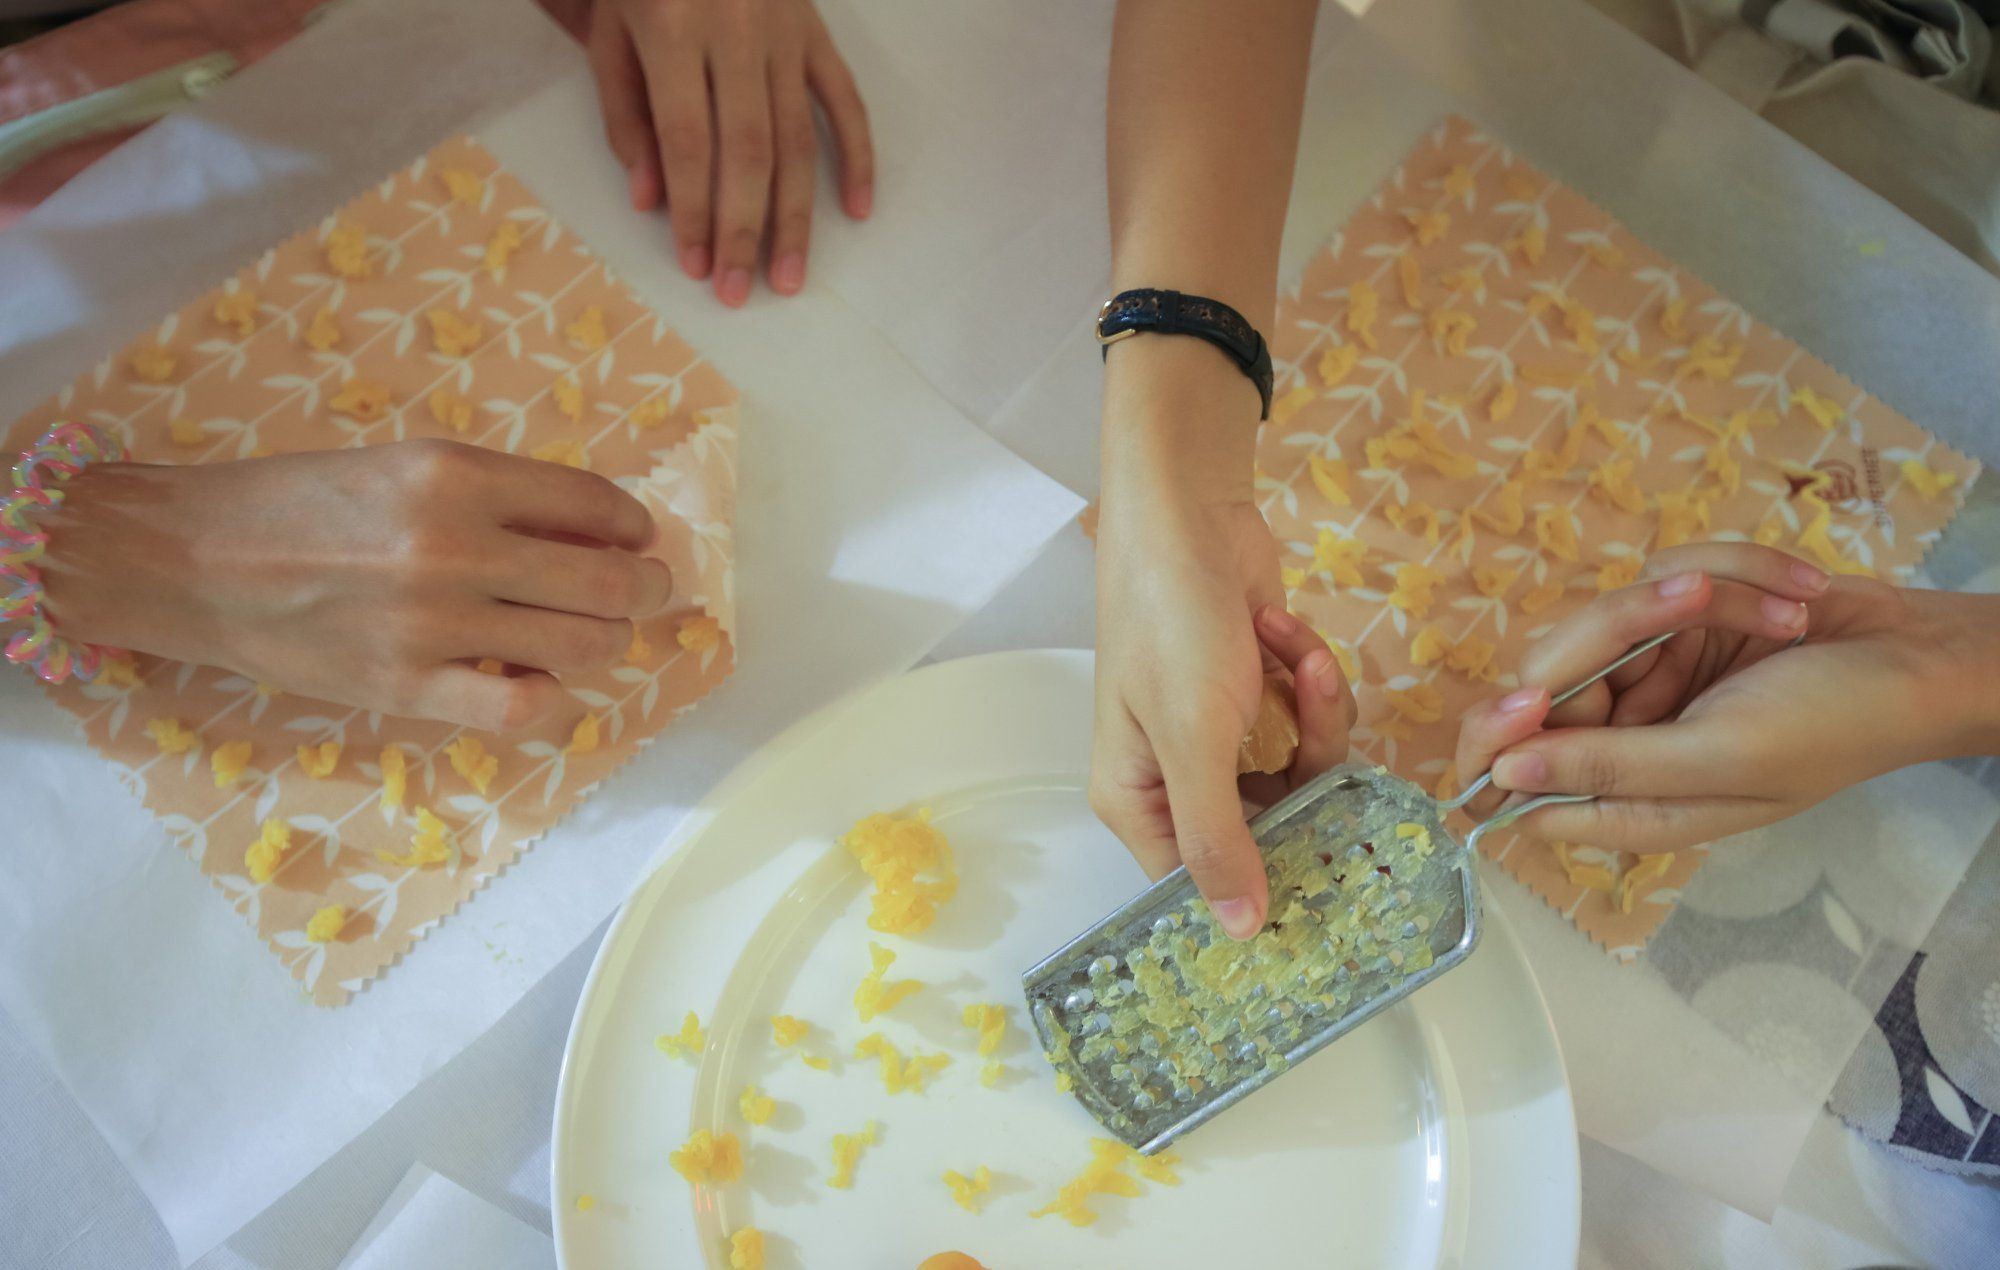 How to make Beeswax Wraps?